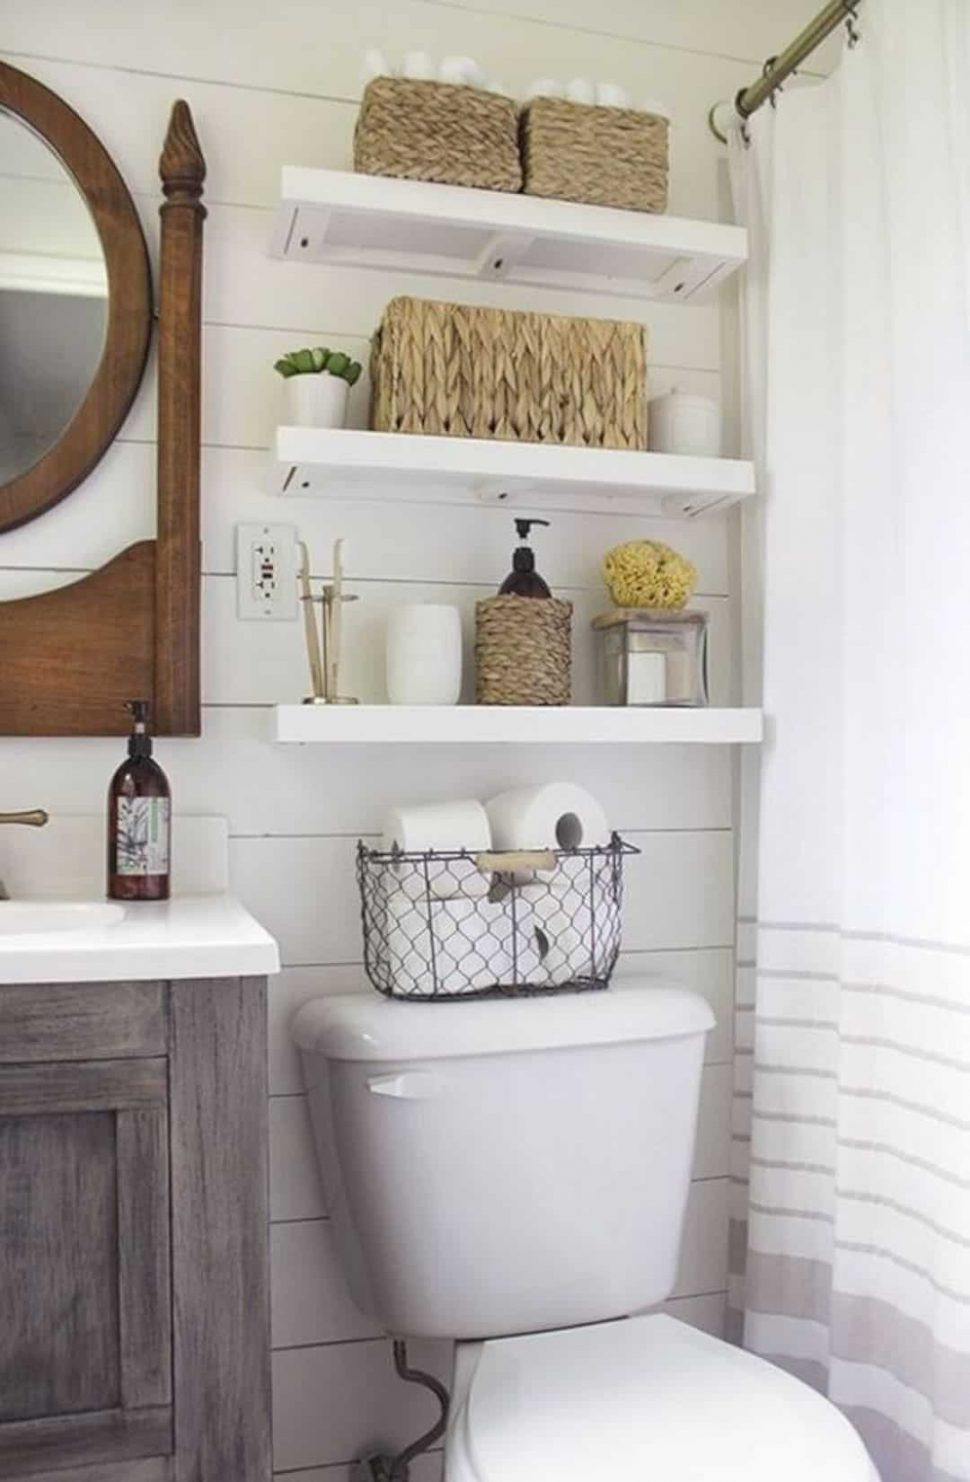 How to Decorate Small Bathrooms Inspirational Bathroom Winsome Decorating Small Bathroom Ideas